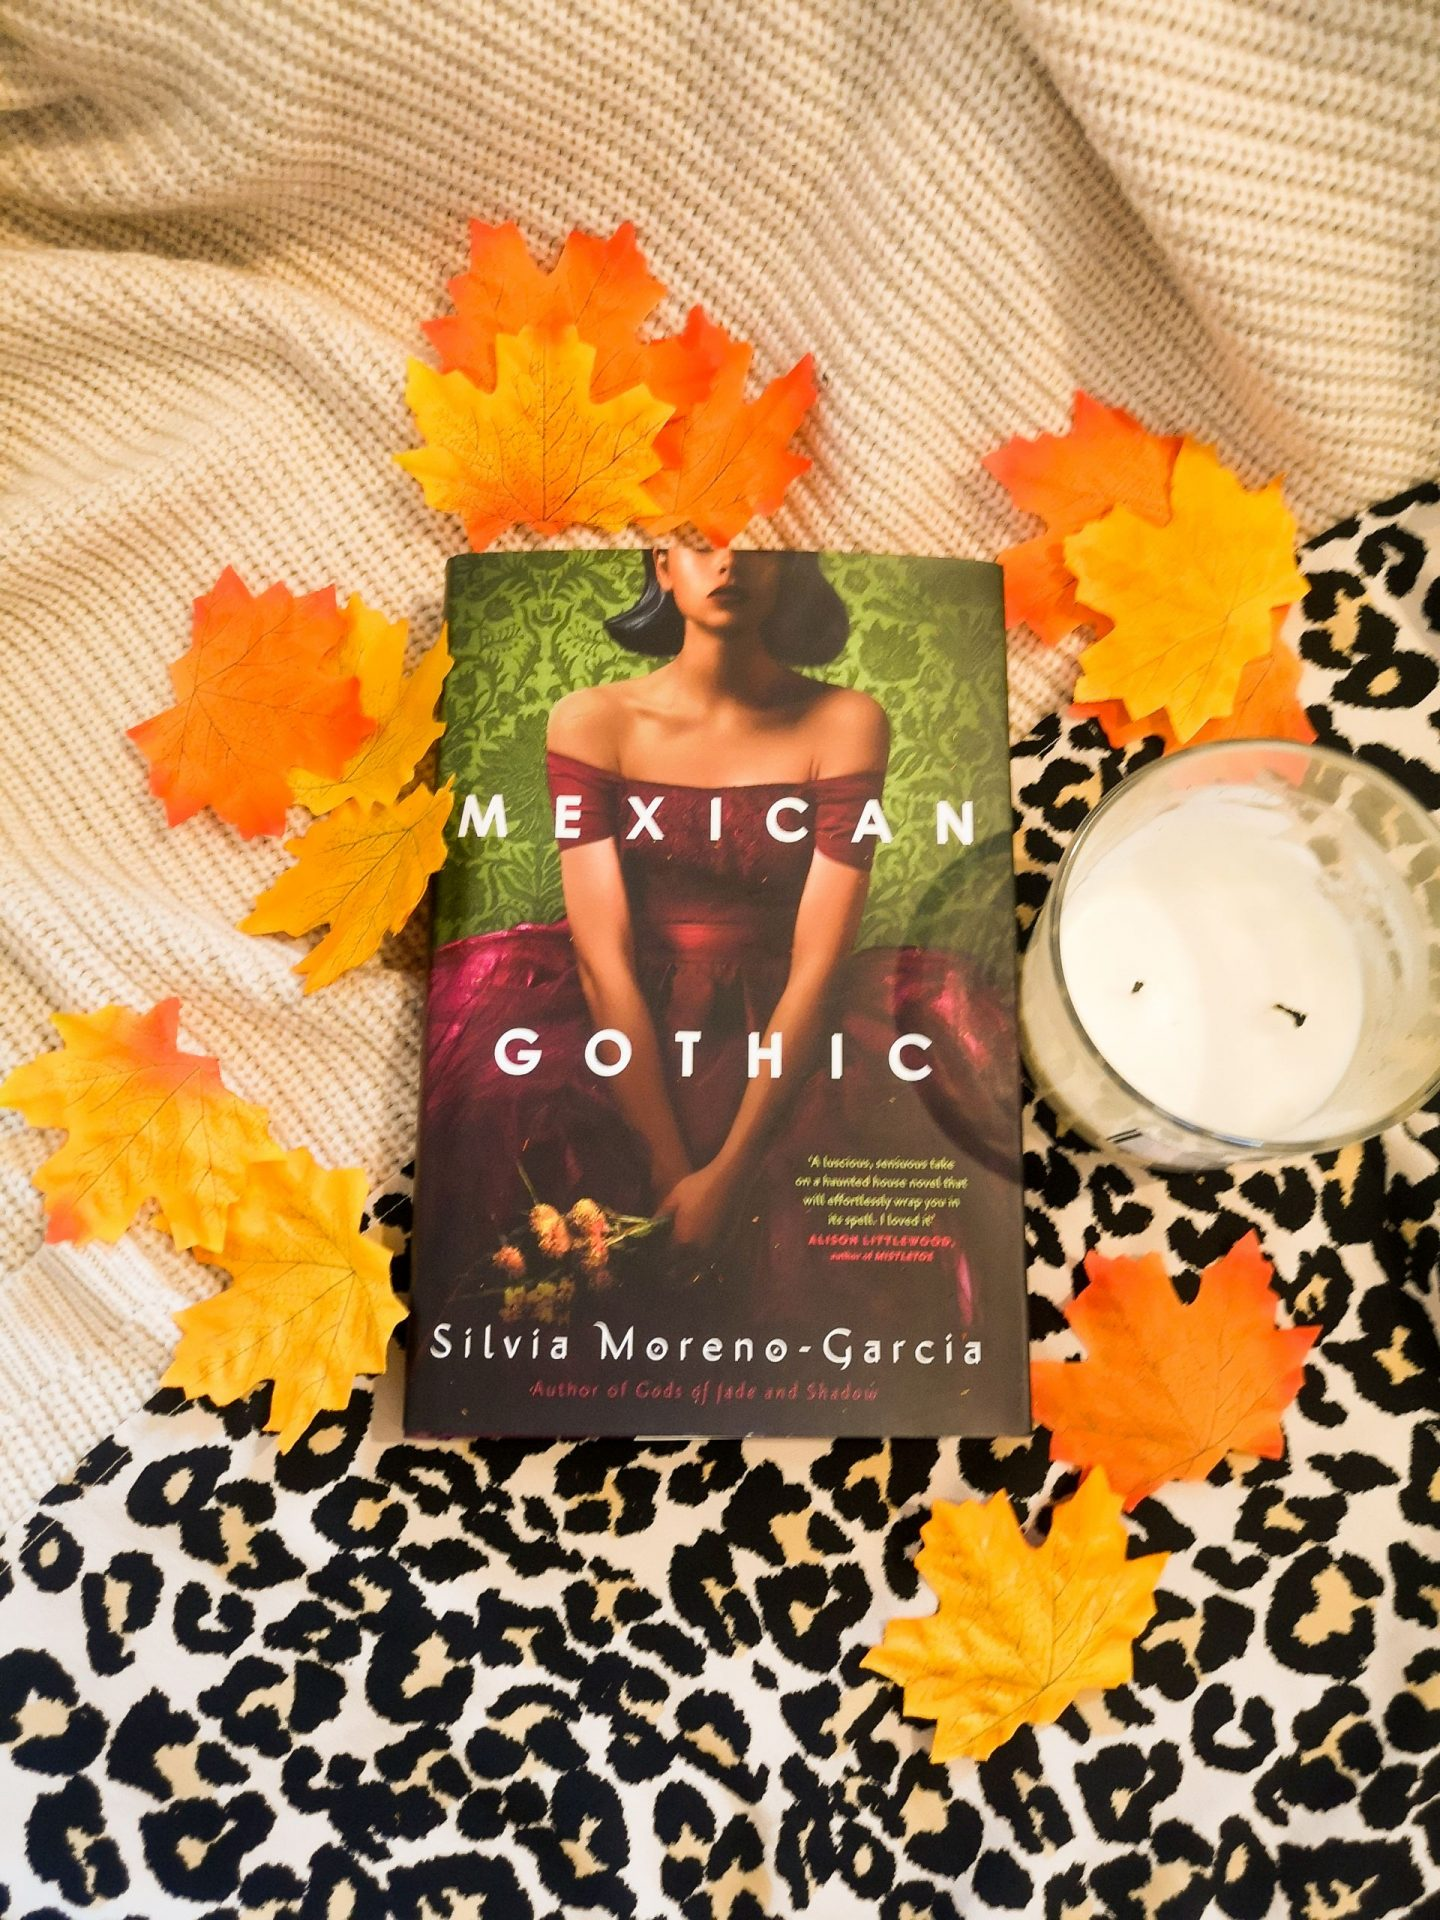 Mexican Gothic by Silvia Moreno-Garcia | Book Review